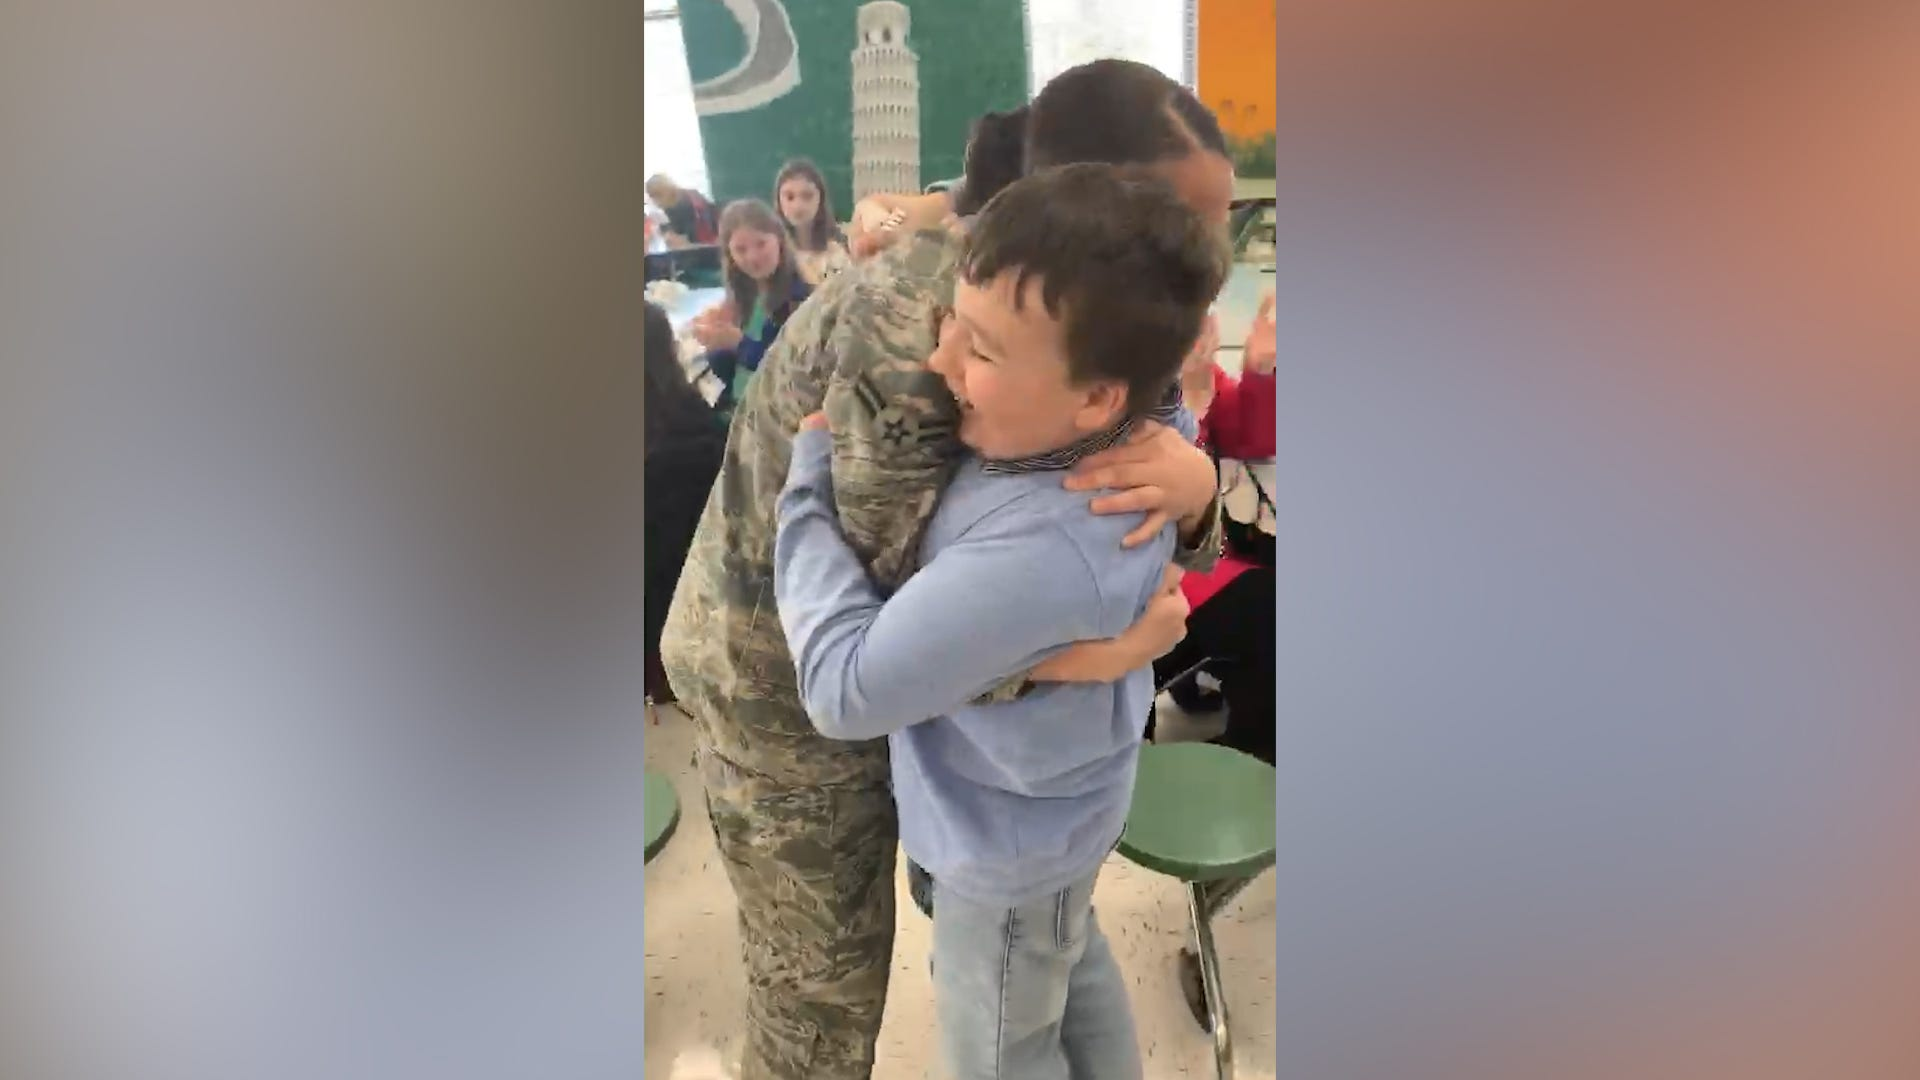 Airman makes brother's birthday wish come true